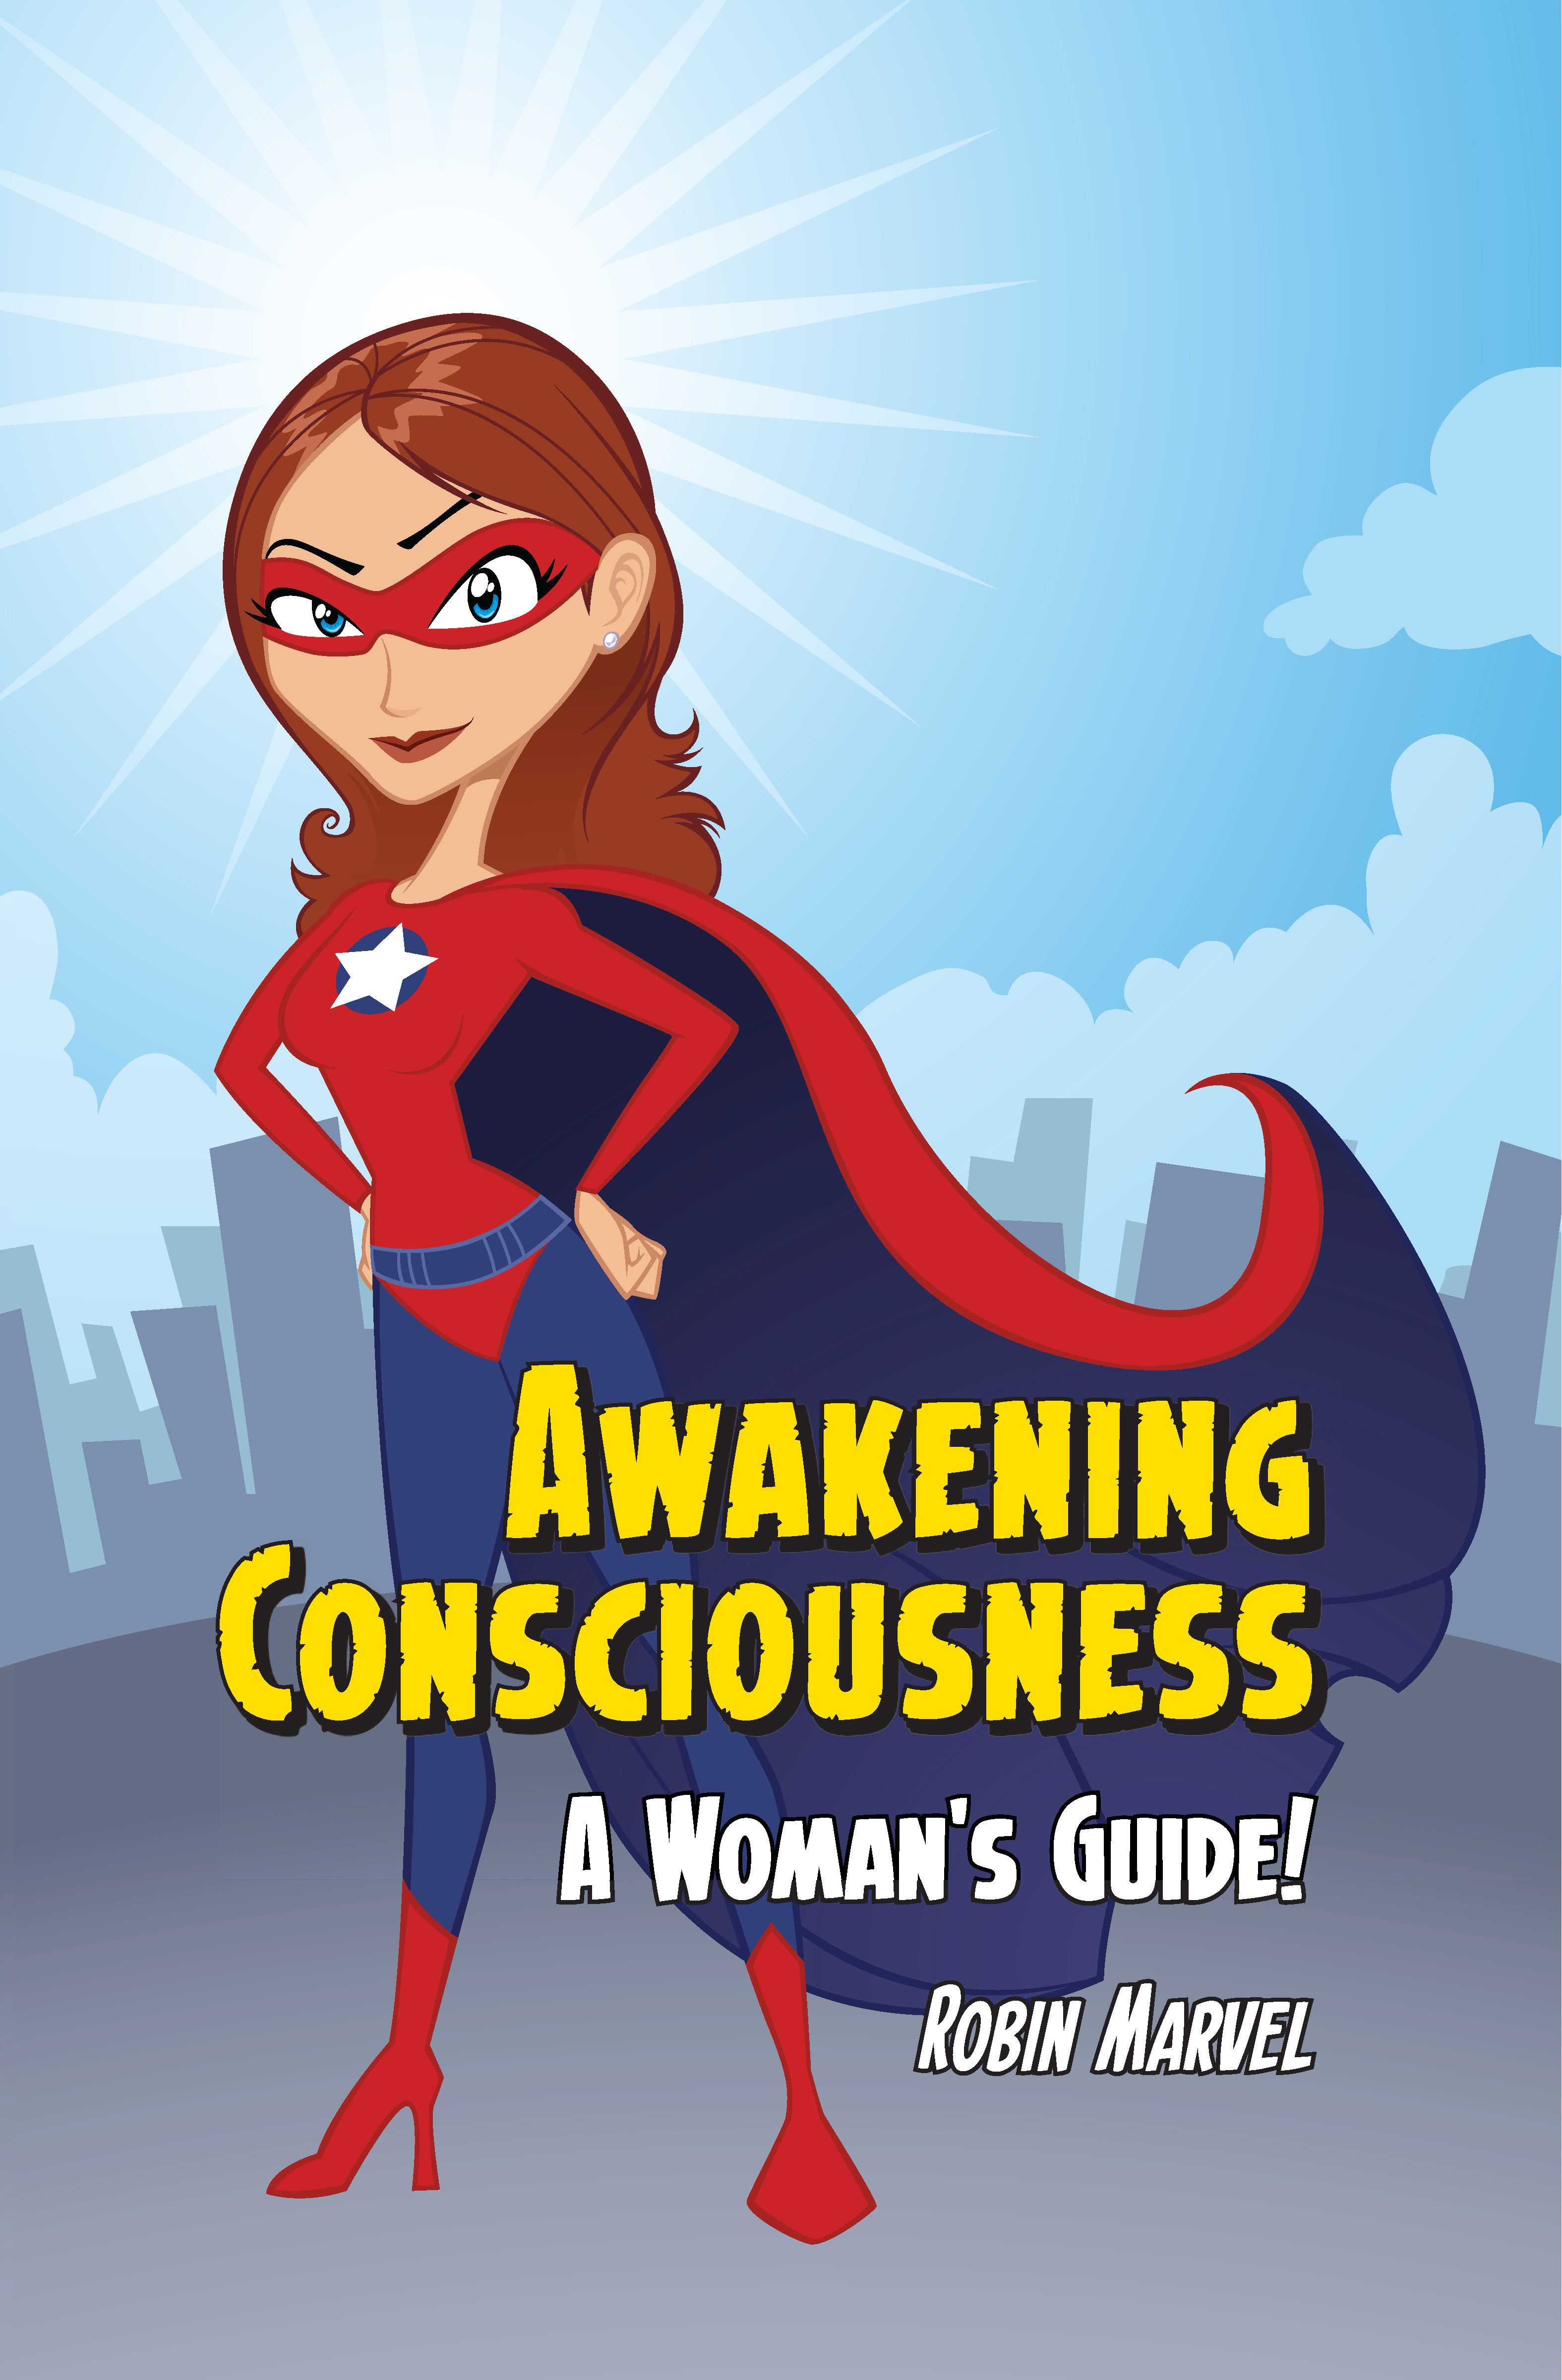 Awakening Consciousness: A Woman's Guide 978-1-61599-064-1